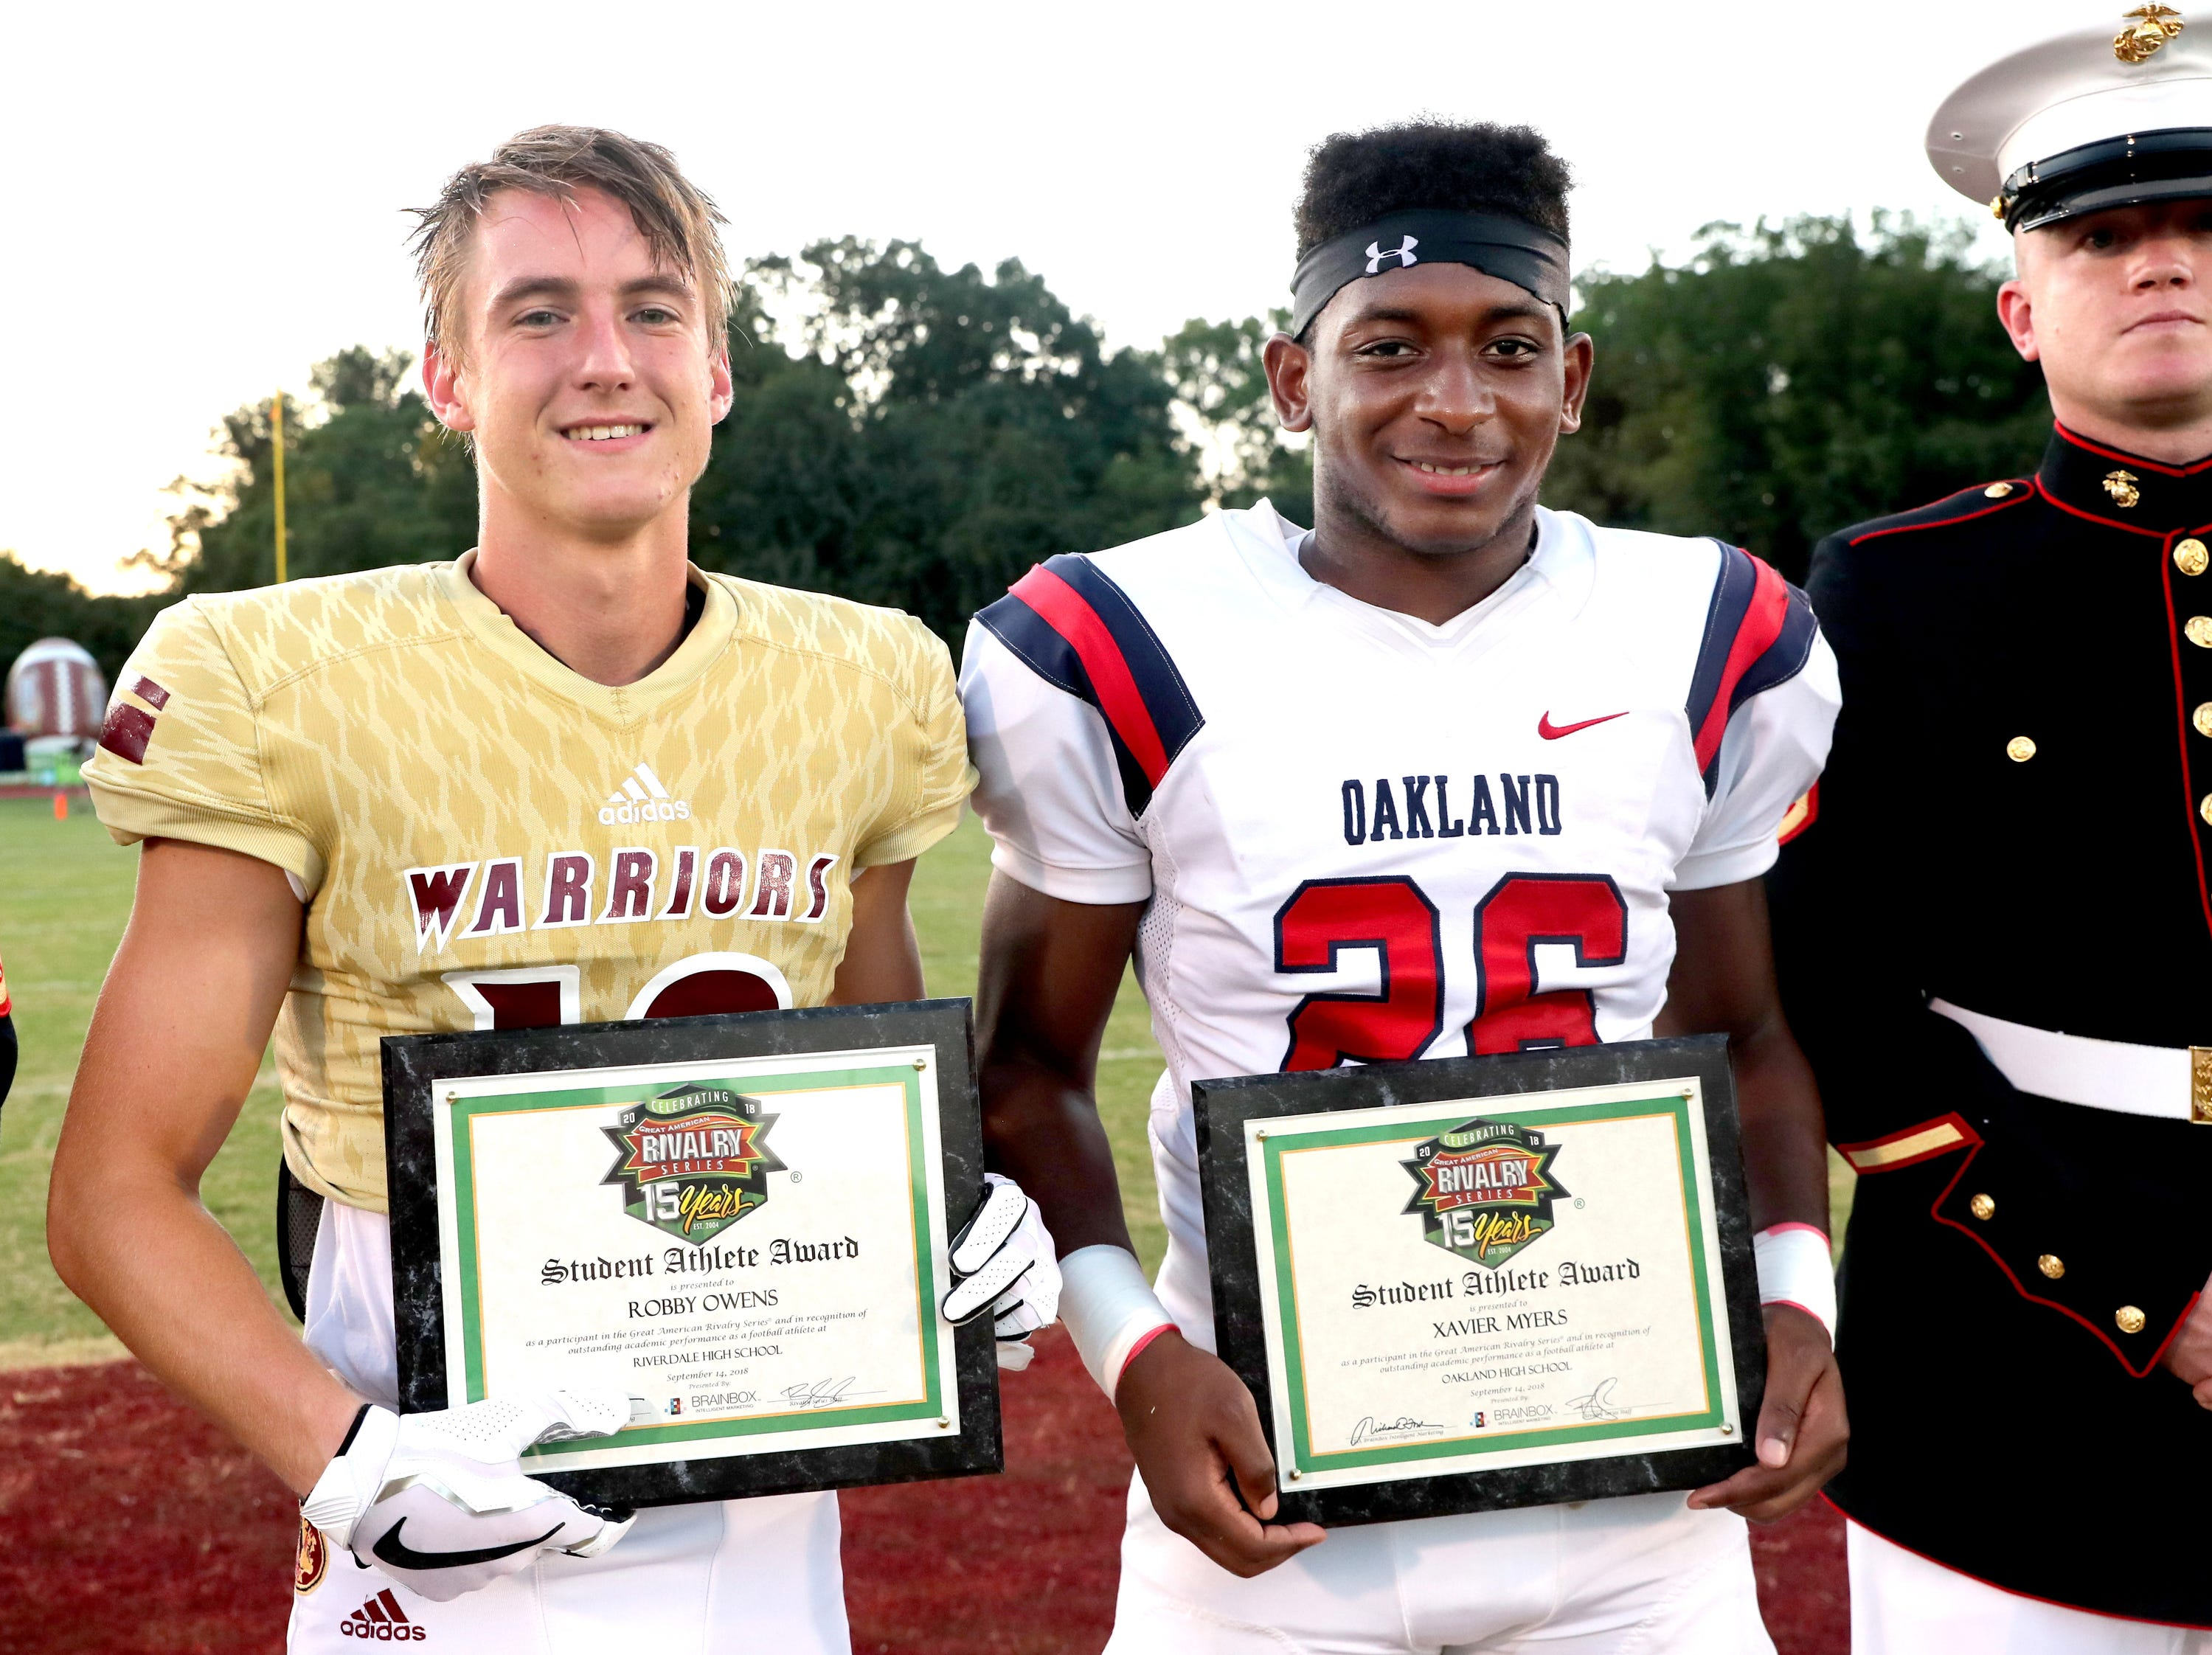 Riverdale's Robby Owens and Oakland's Xavier Myers both were presented with outstanding academic performance awards for their teams before the game between Oakland and Riverdale, during the Battle of the Boro, on Friday, Sept. 14, 2018, at Riverdale.